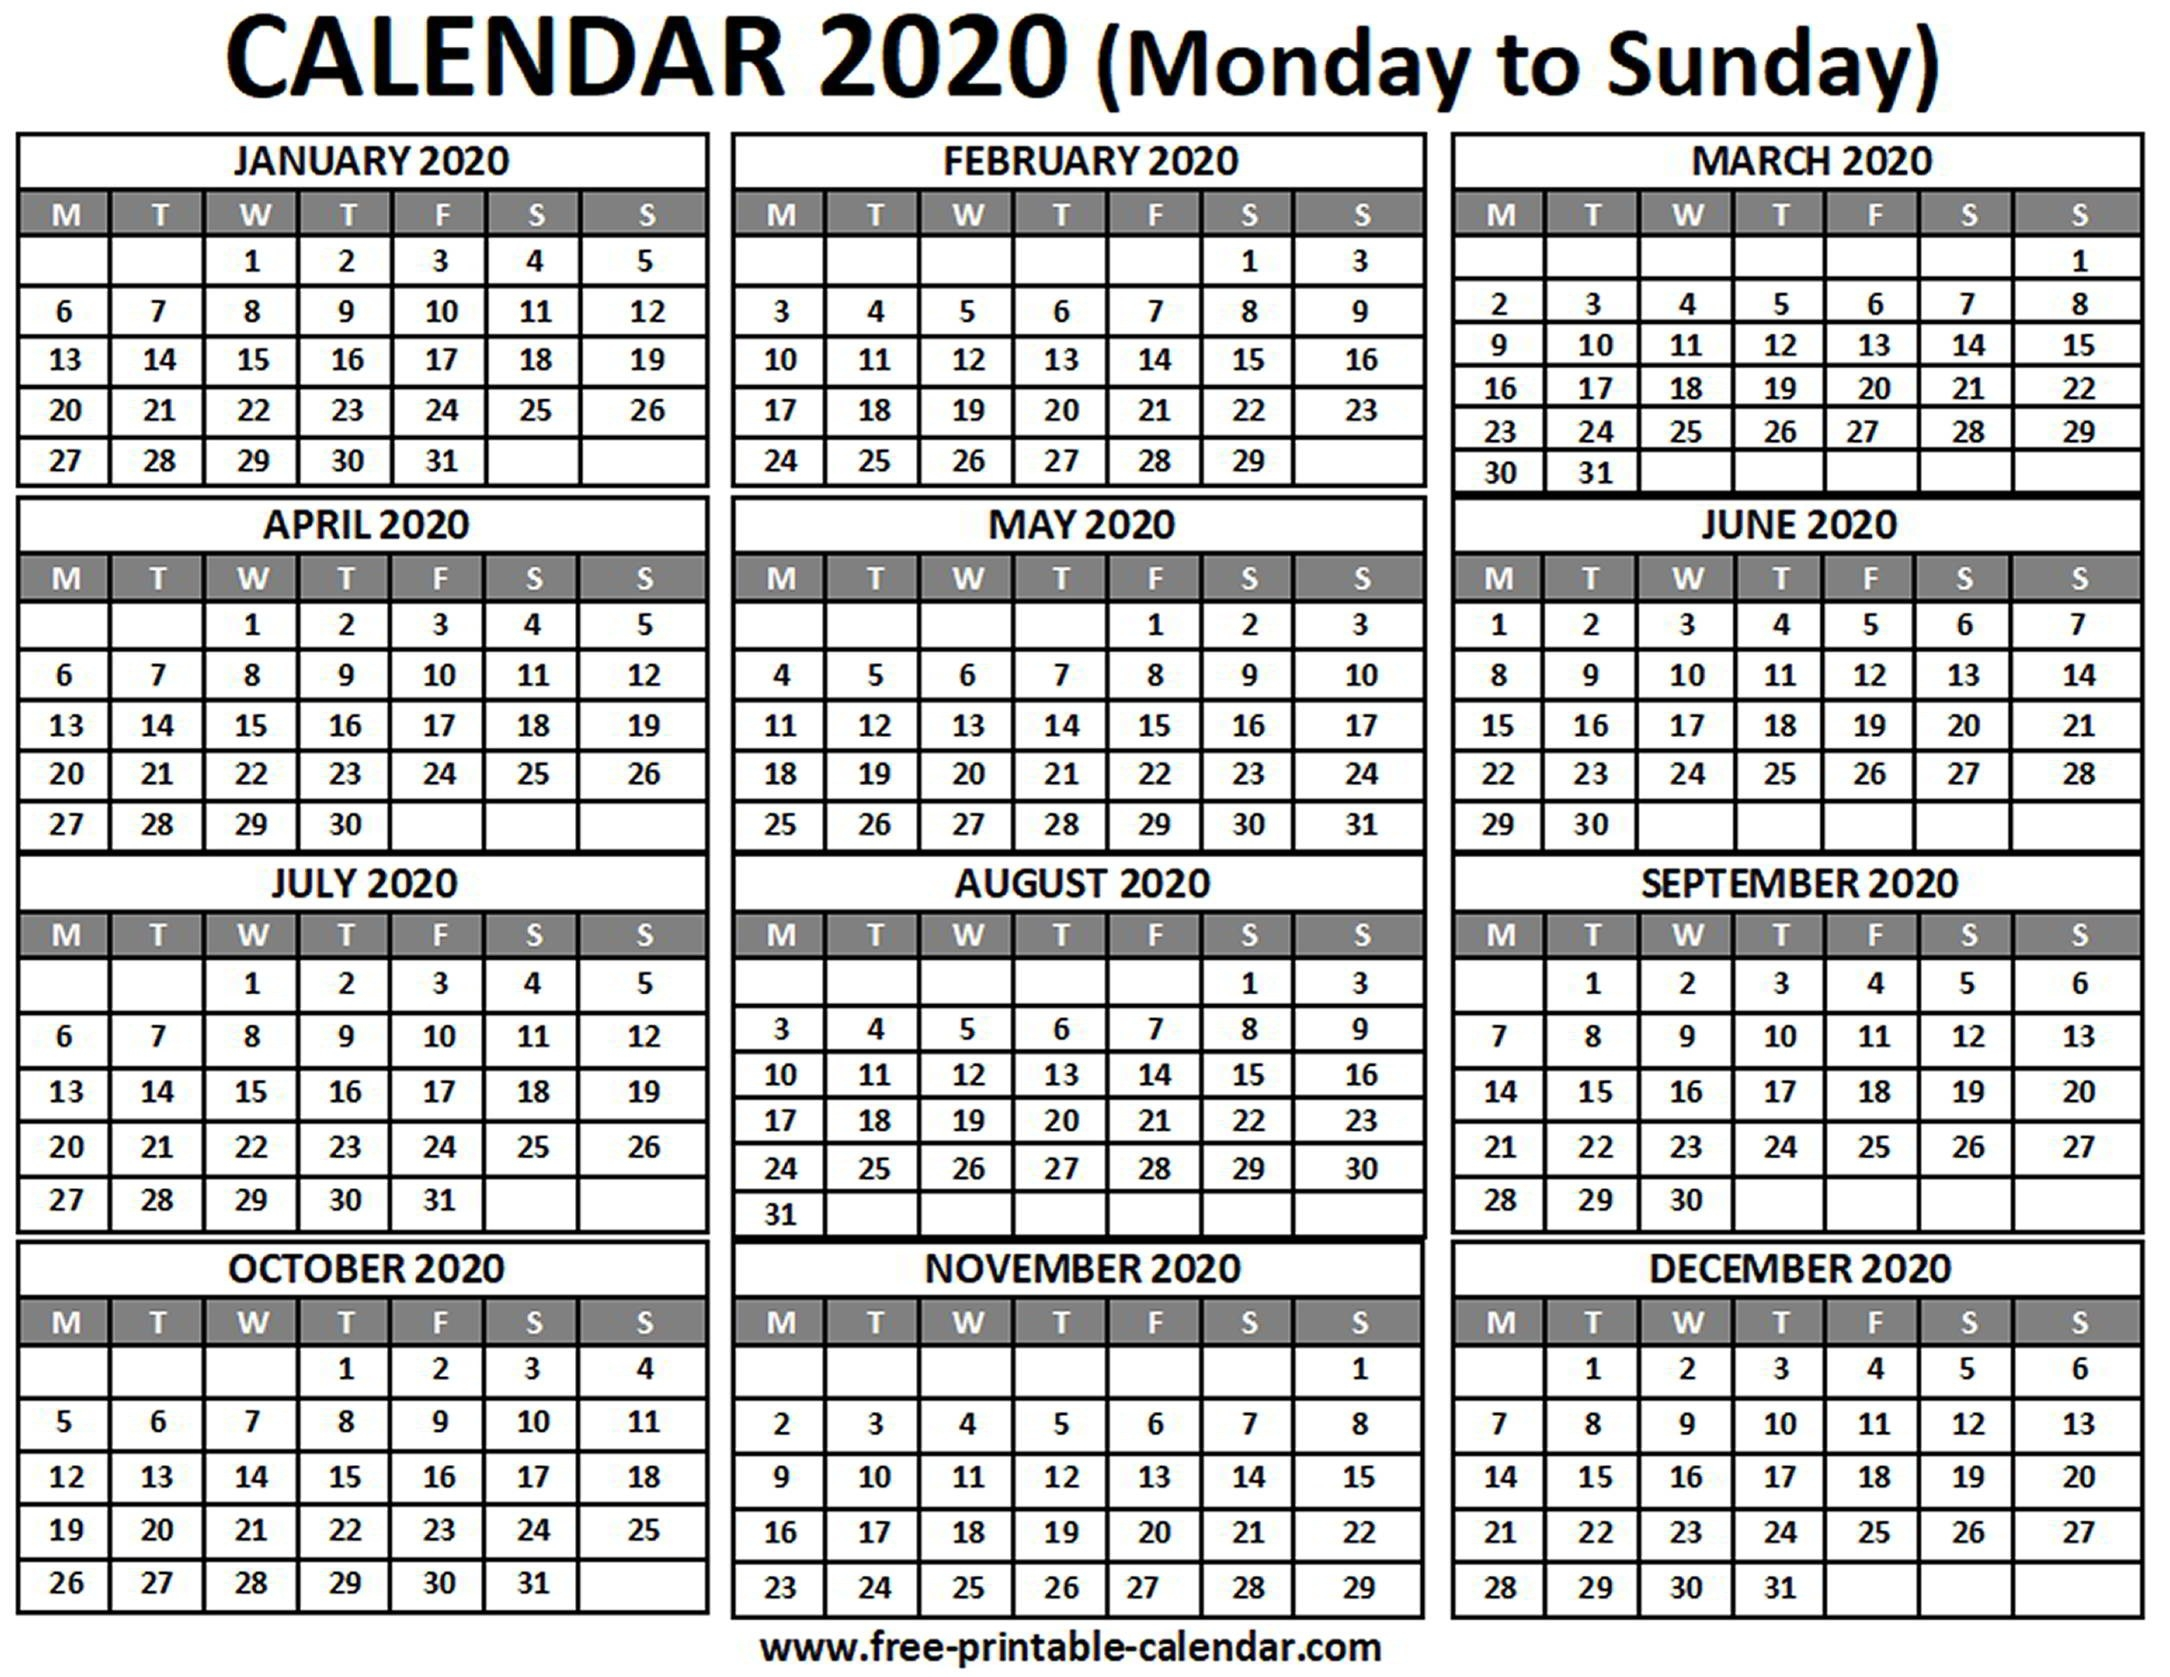 2020 Calendar - Free-Printable-Calendar-Printable Calendar 2020 Monthly Monday Start